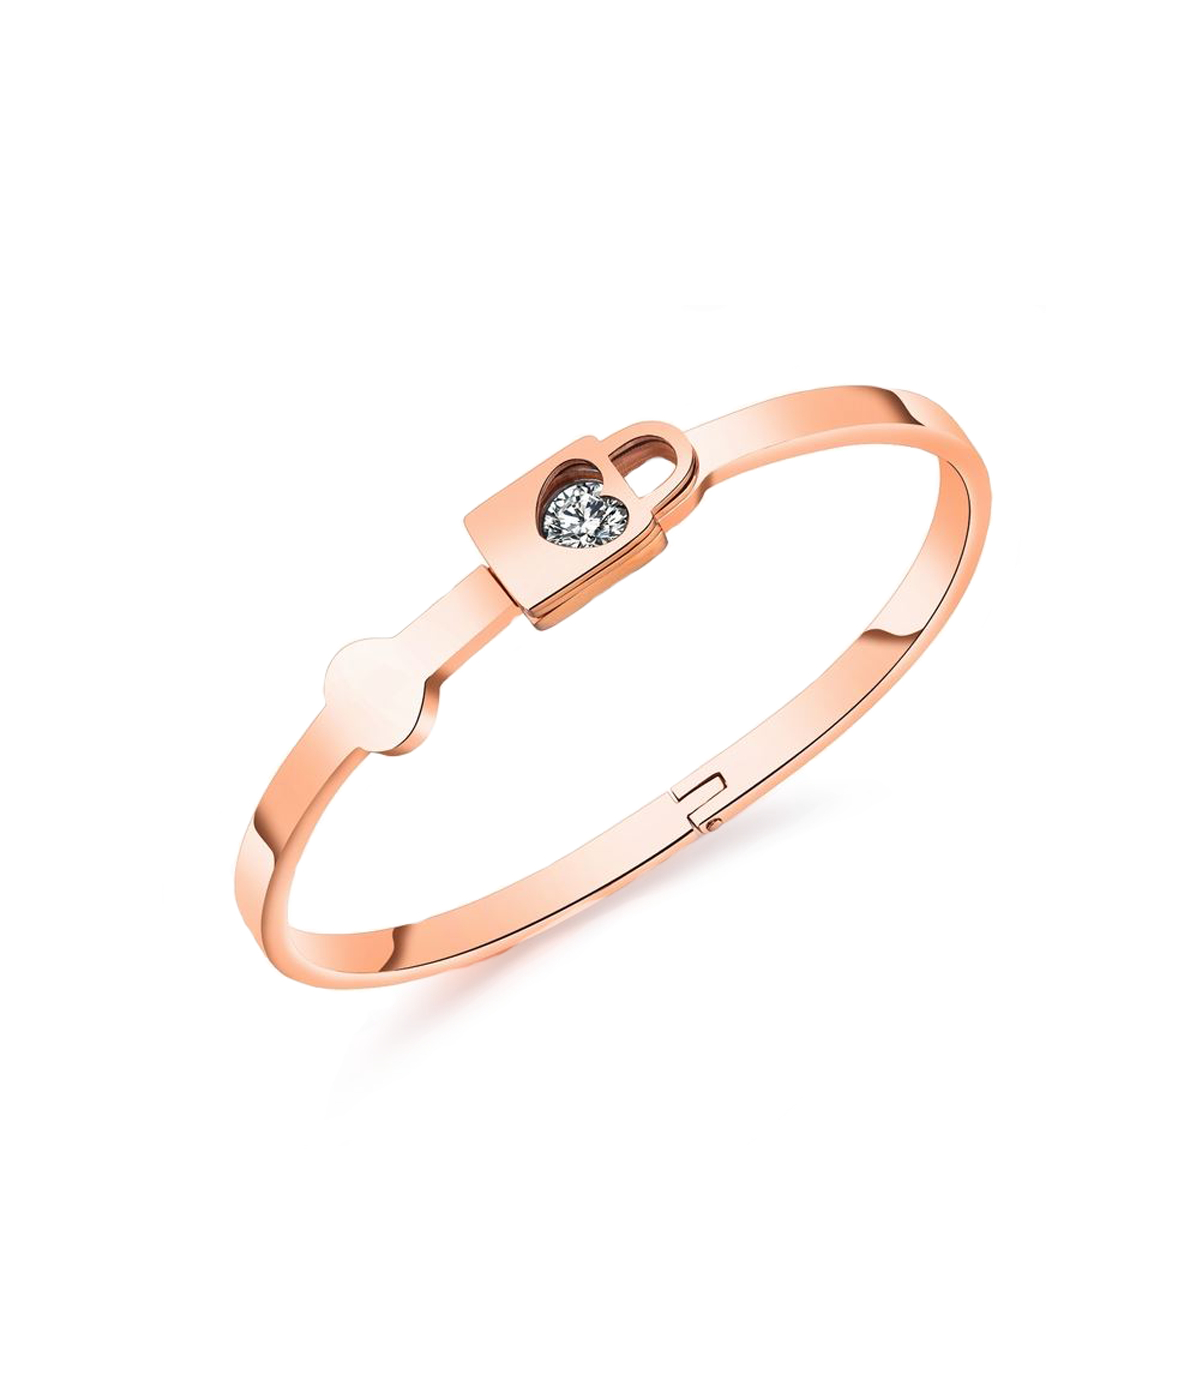 Bangle With Heart Shaped Padlock In Newest Heart Shaped Padlock Rings (View 10 of 25)